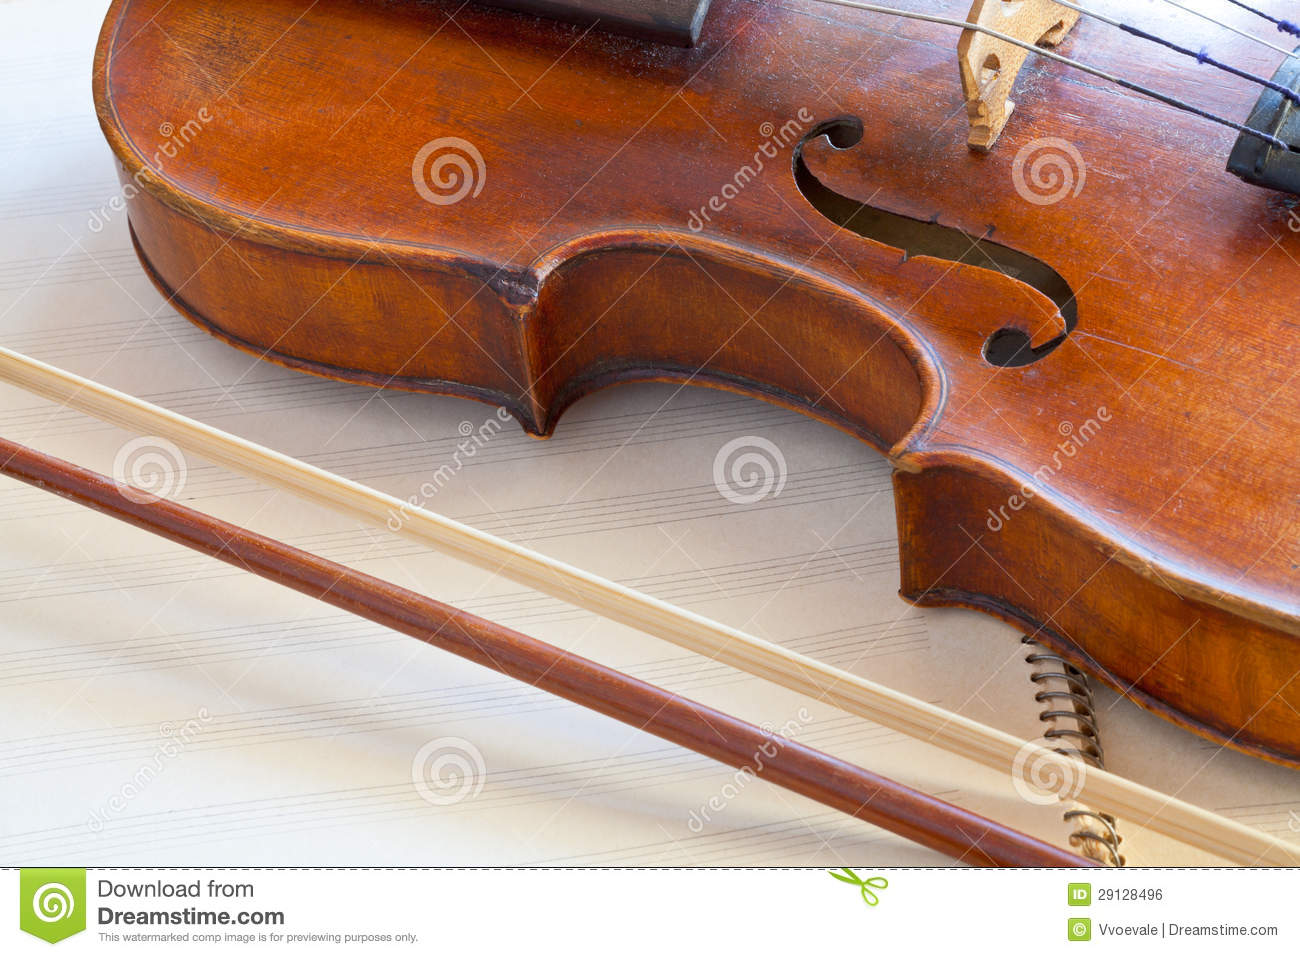 "settings analysis of rothschild fiddle Settings analysis of rothschild fiddle essay the story the setting of ""rothschild's fiddle "" is a squalid little village where yakov ivanov, a russian coffin maker, and rothschild , an equally poor jewish musician, both live."